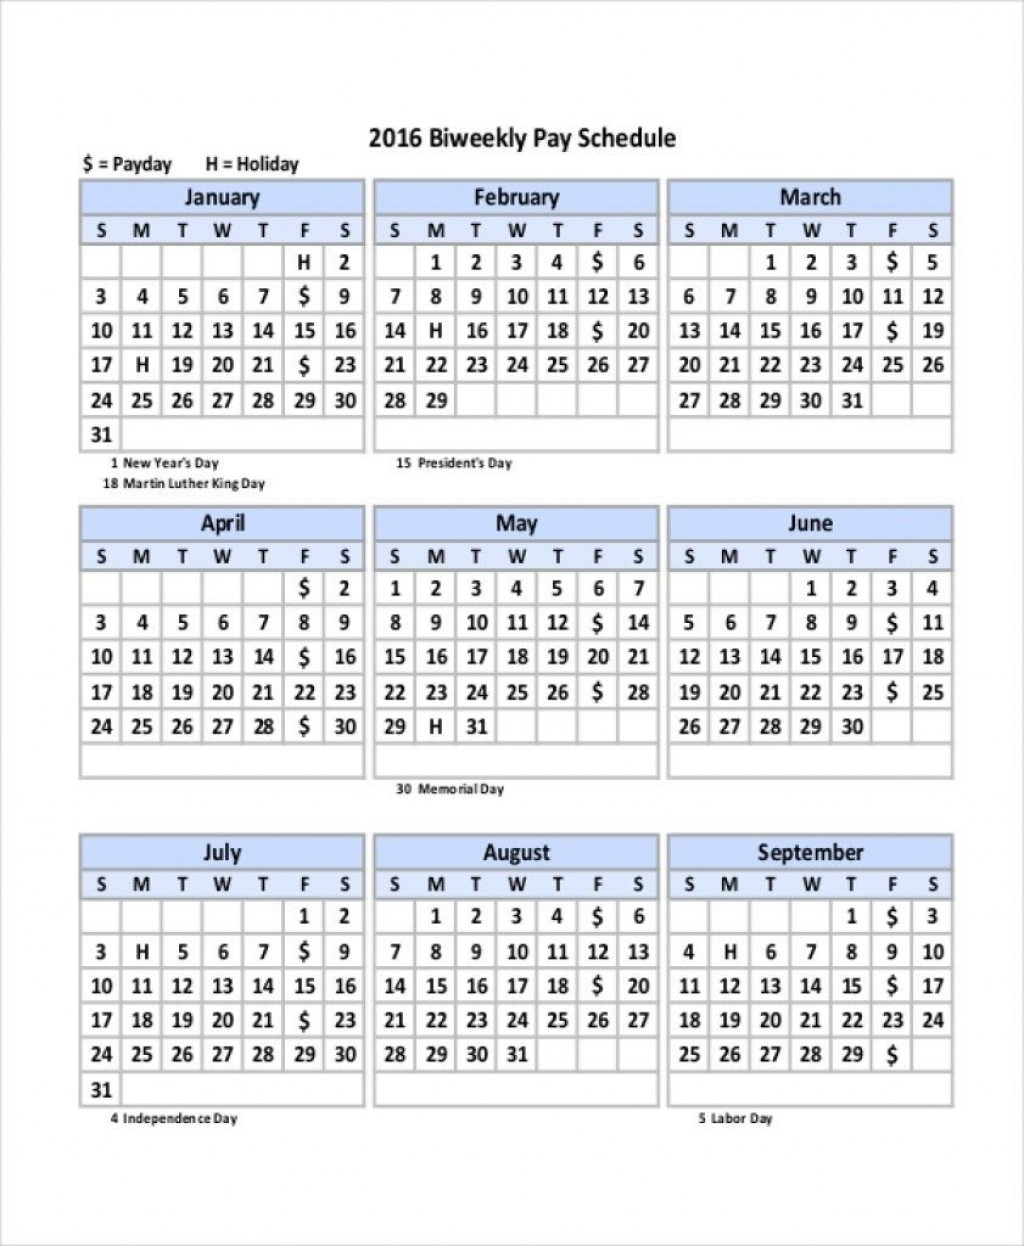 003 Outstanding Payroll Calendar Template 2020 Concept  Biweekly Schedule Excel FreeLarge